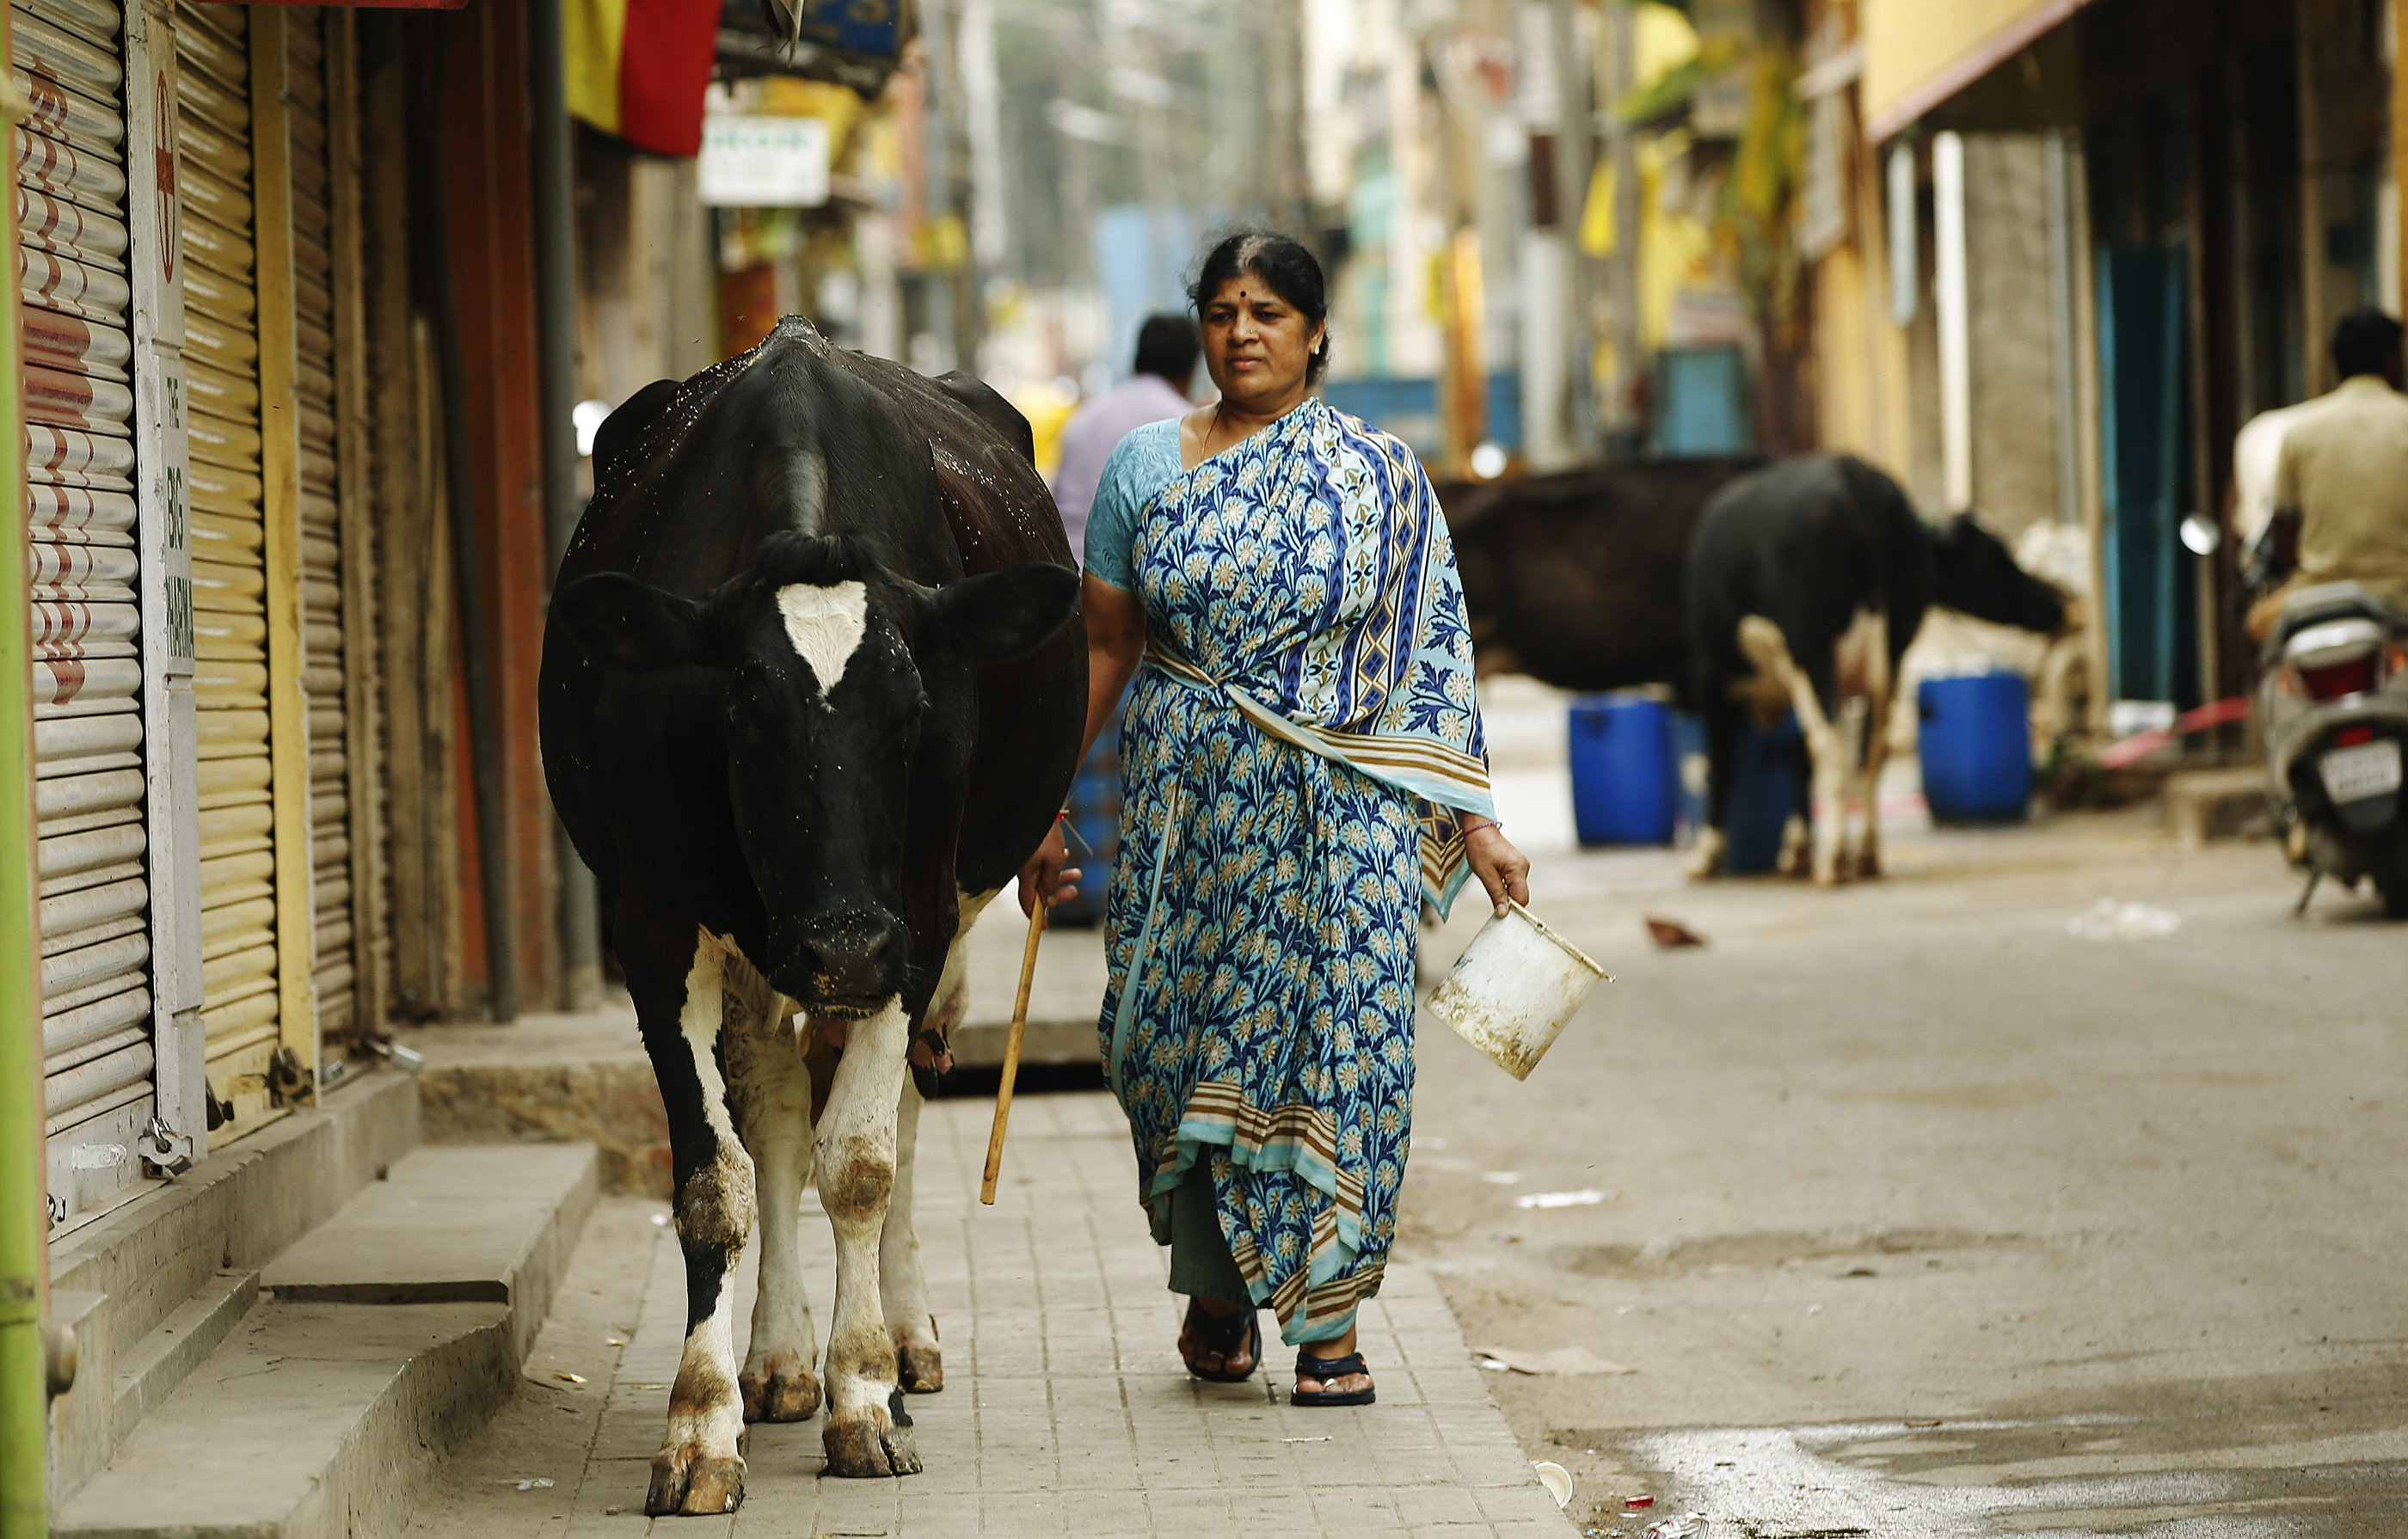 A woman herds a cow on a street in Bengaluru, India, on Thursday, April 19, 2018.